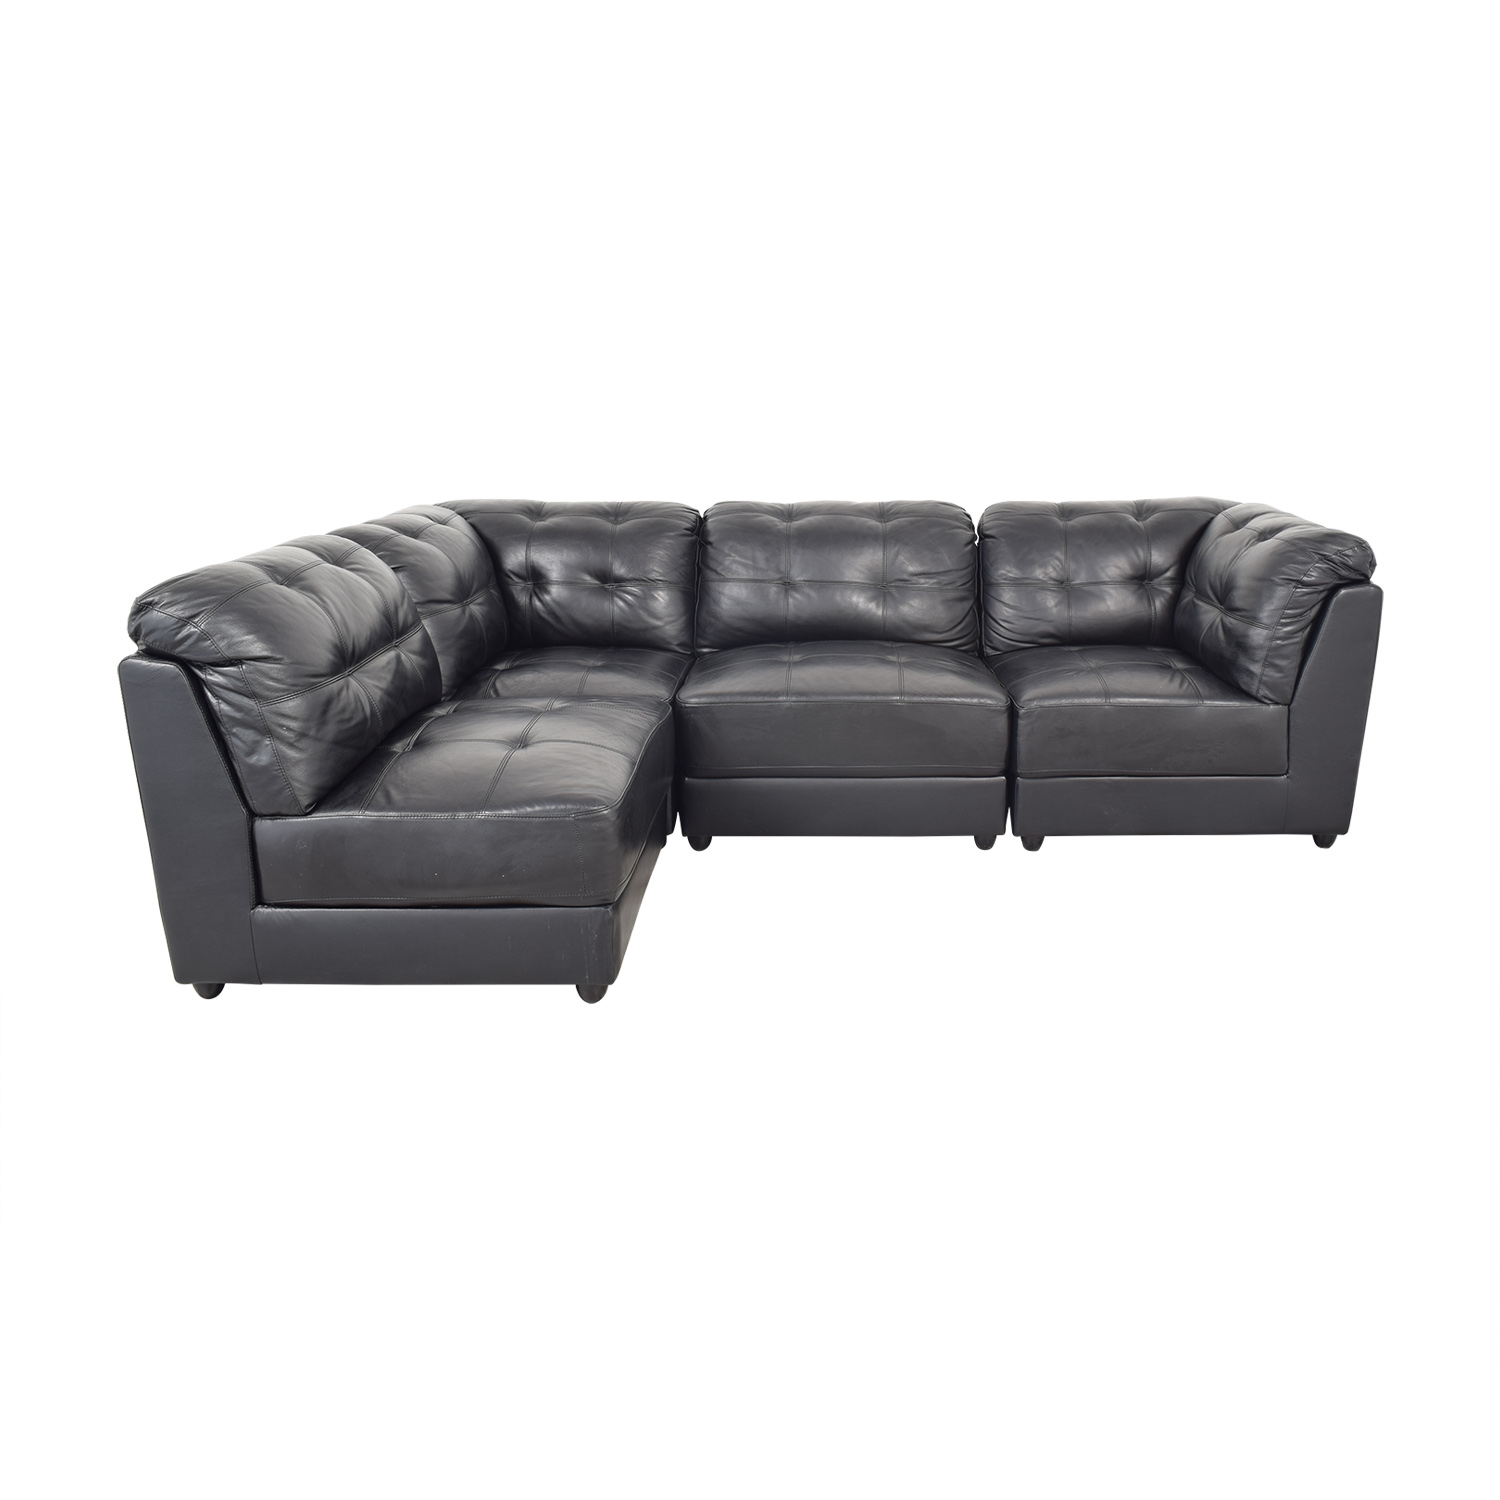 Abbyson Abbyson Ella 5-Piece Black Modular Leather Sectional with Ottoman pa